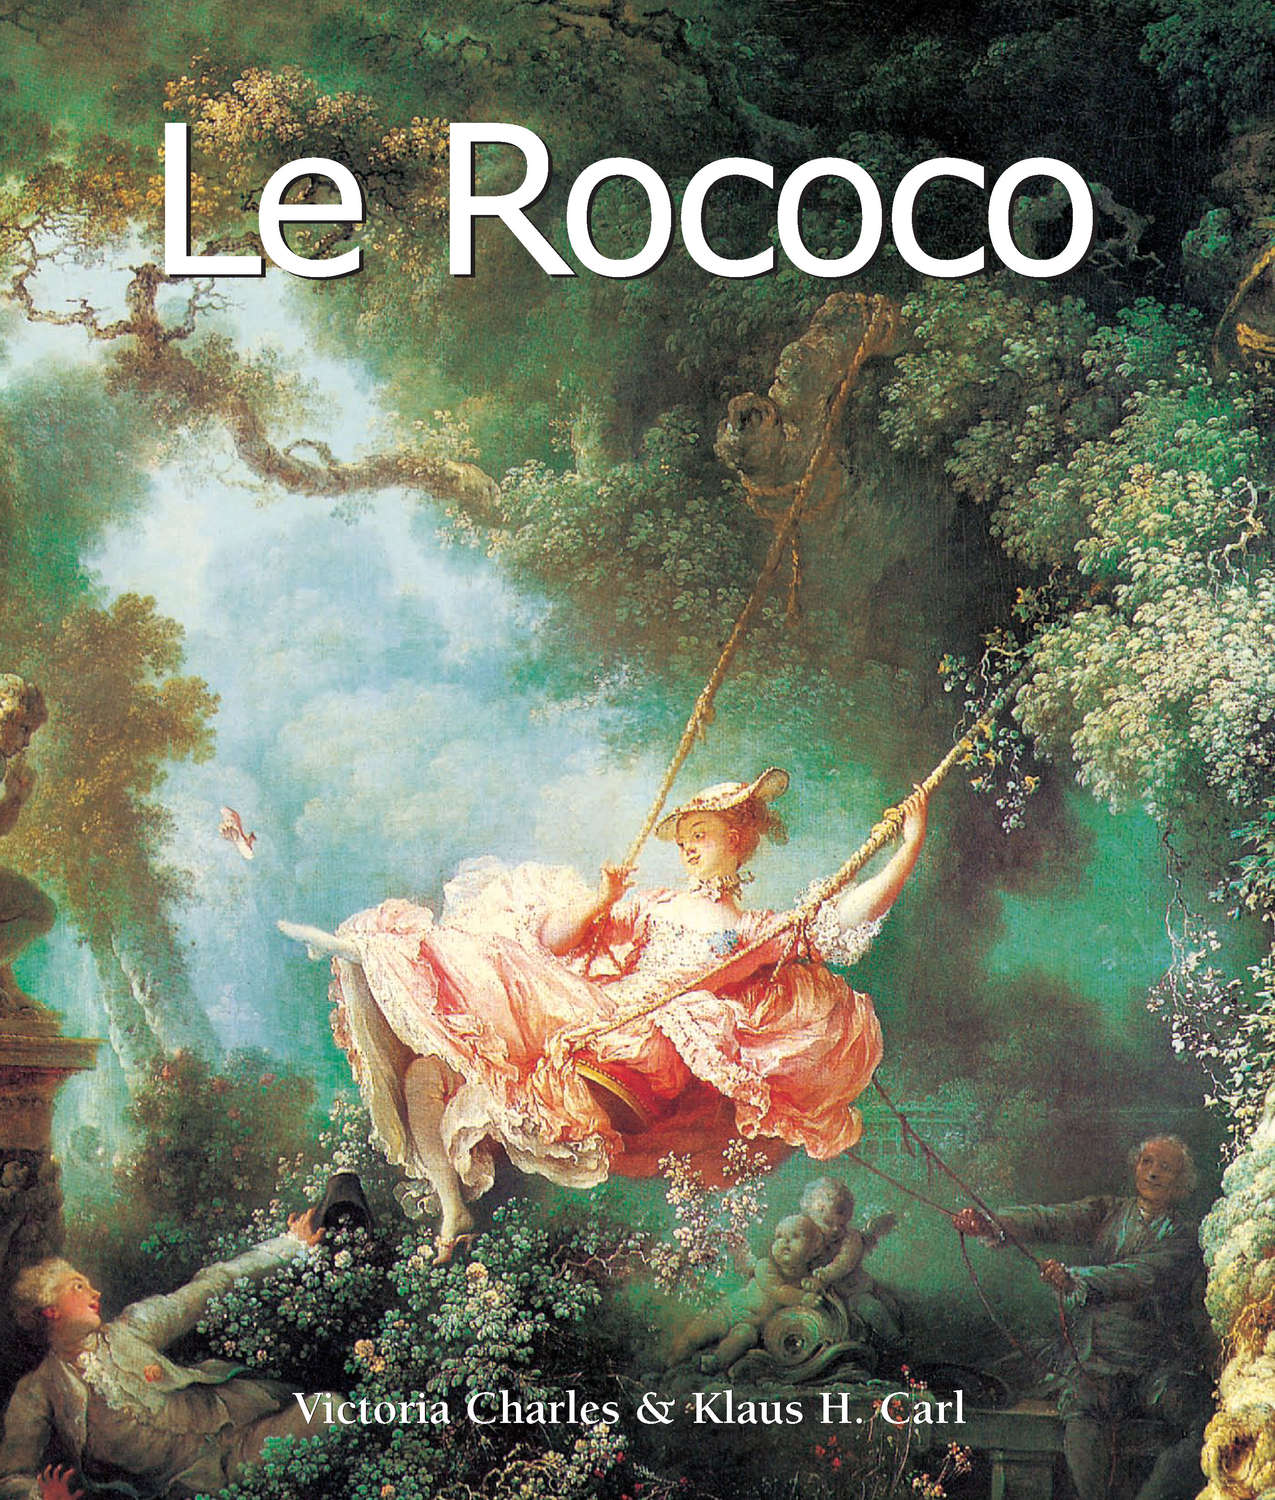 an introduction to the history of the artwork during the rococo movement Or french rococo, appeared in paris during the much of rococo sculpture was lighter and offered more movement than the rococo in the history of.